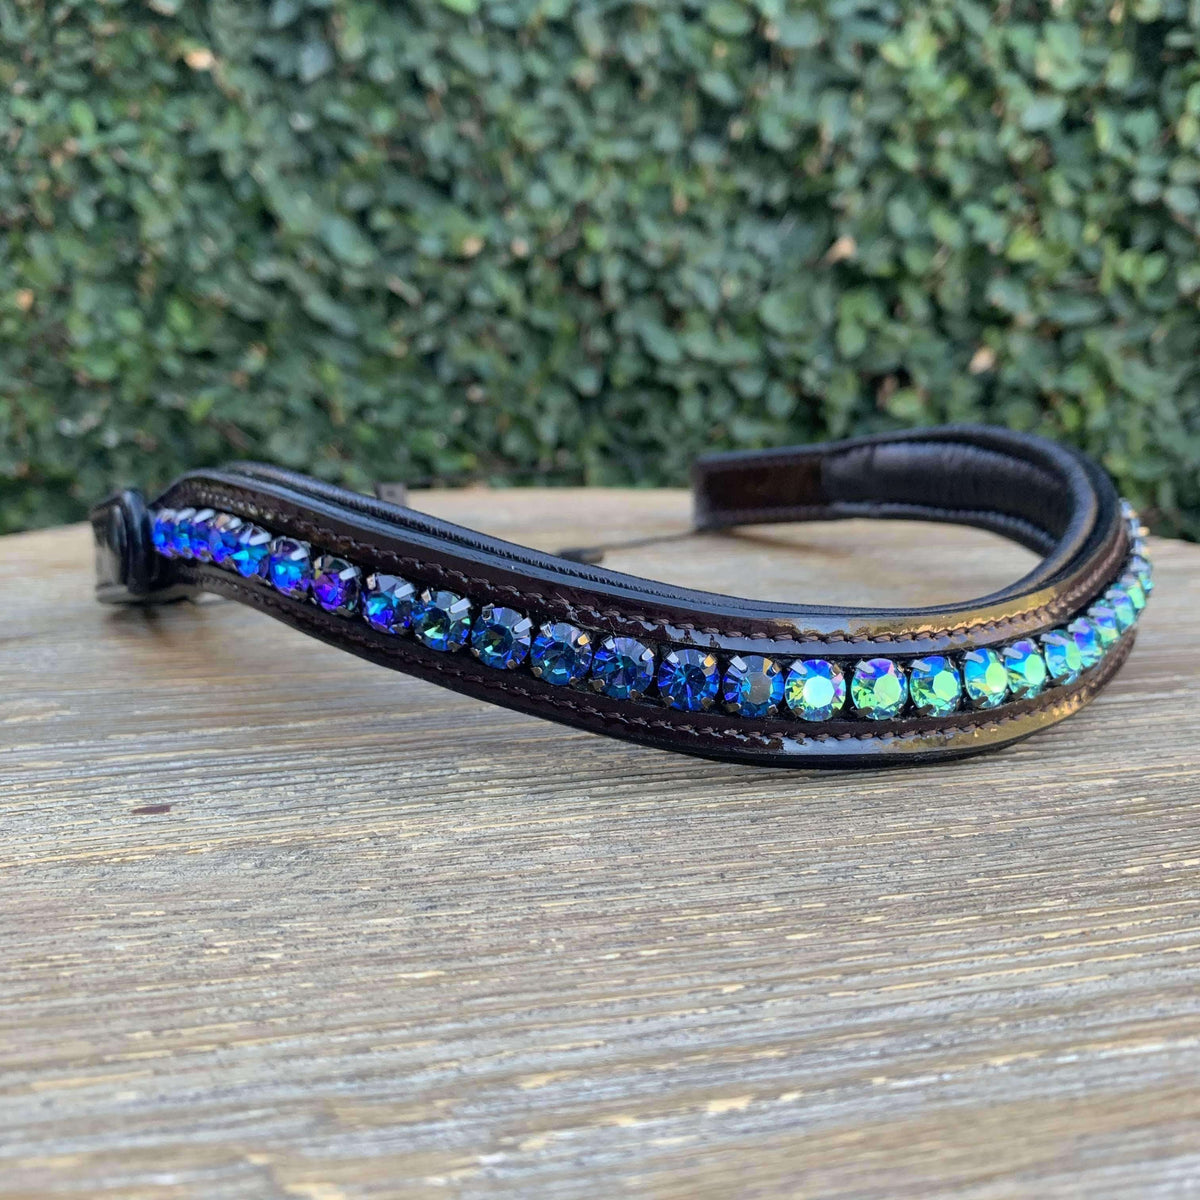 Halter Ego® Swarovski Crystal Patent Browband - Limited Edition - Peacock